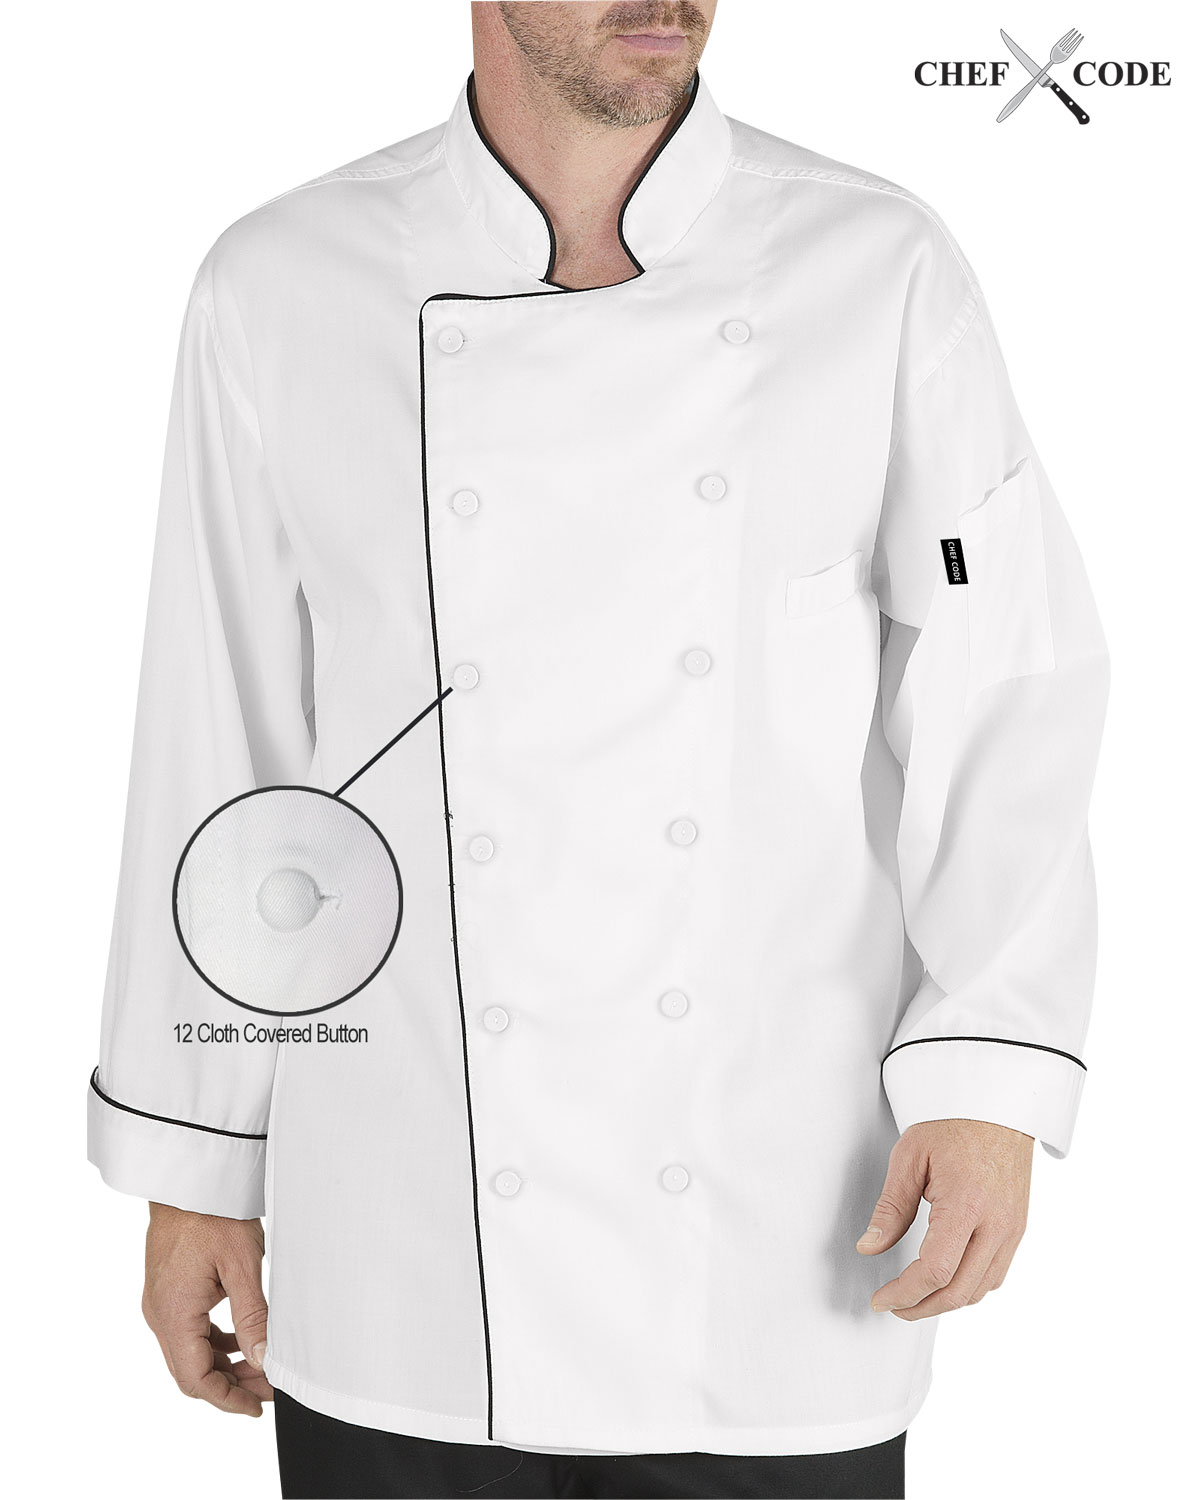 Chef Code Executive Chef Coat Jacket, French Cuffs, Contrast Piping CC103 by Chef Code